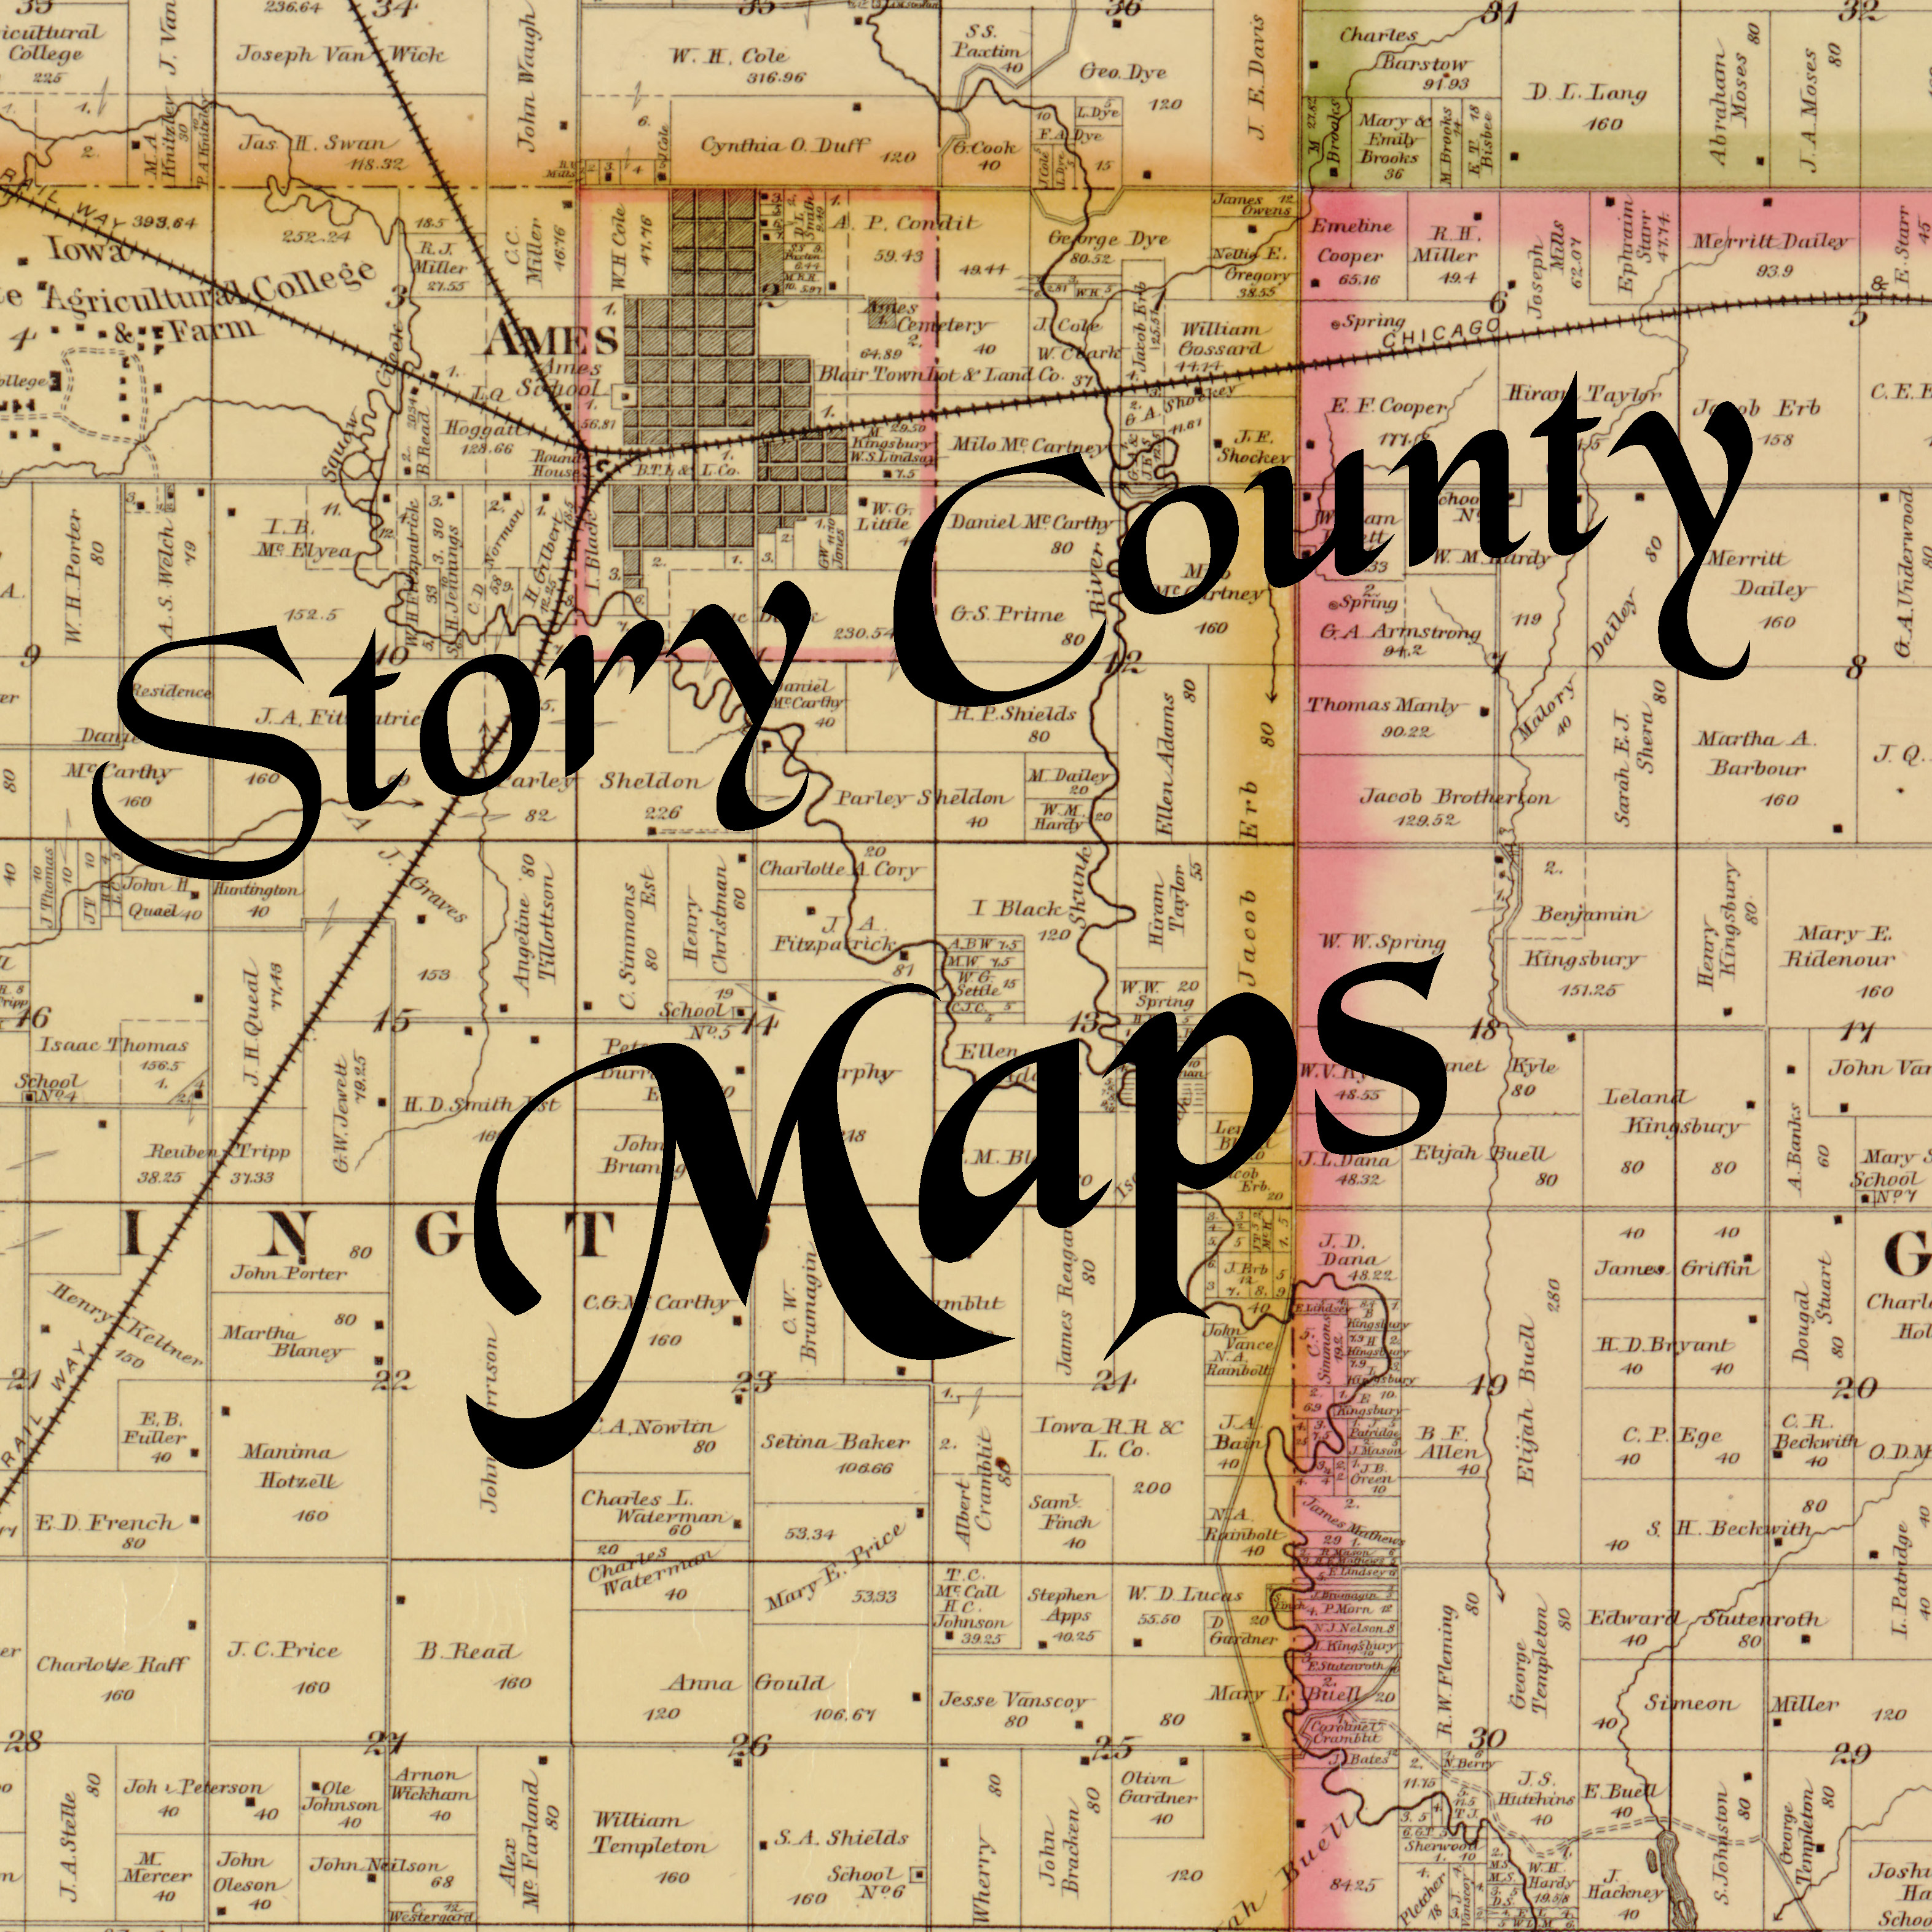 story county map icon.jpg